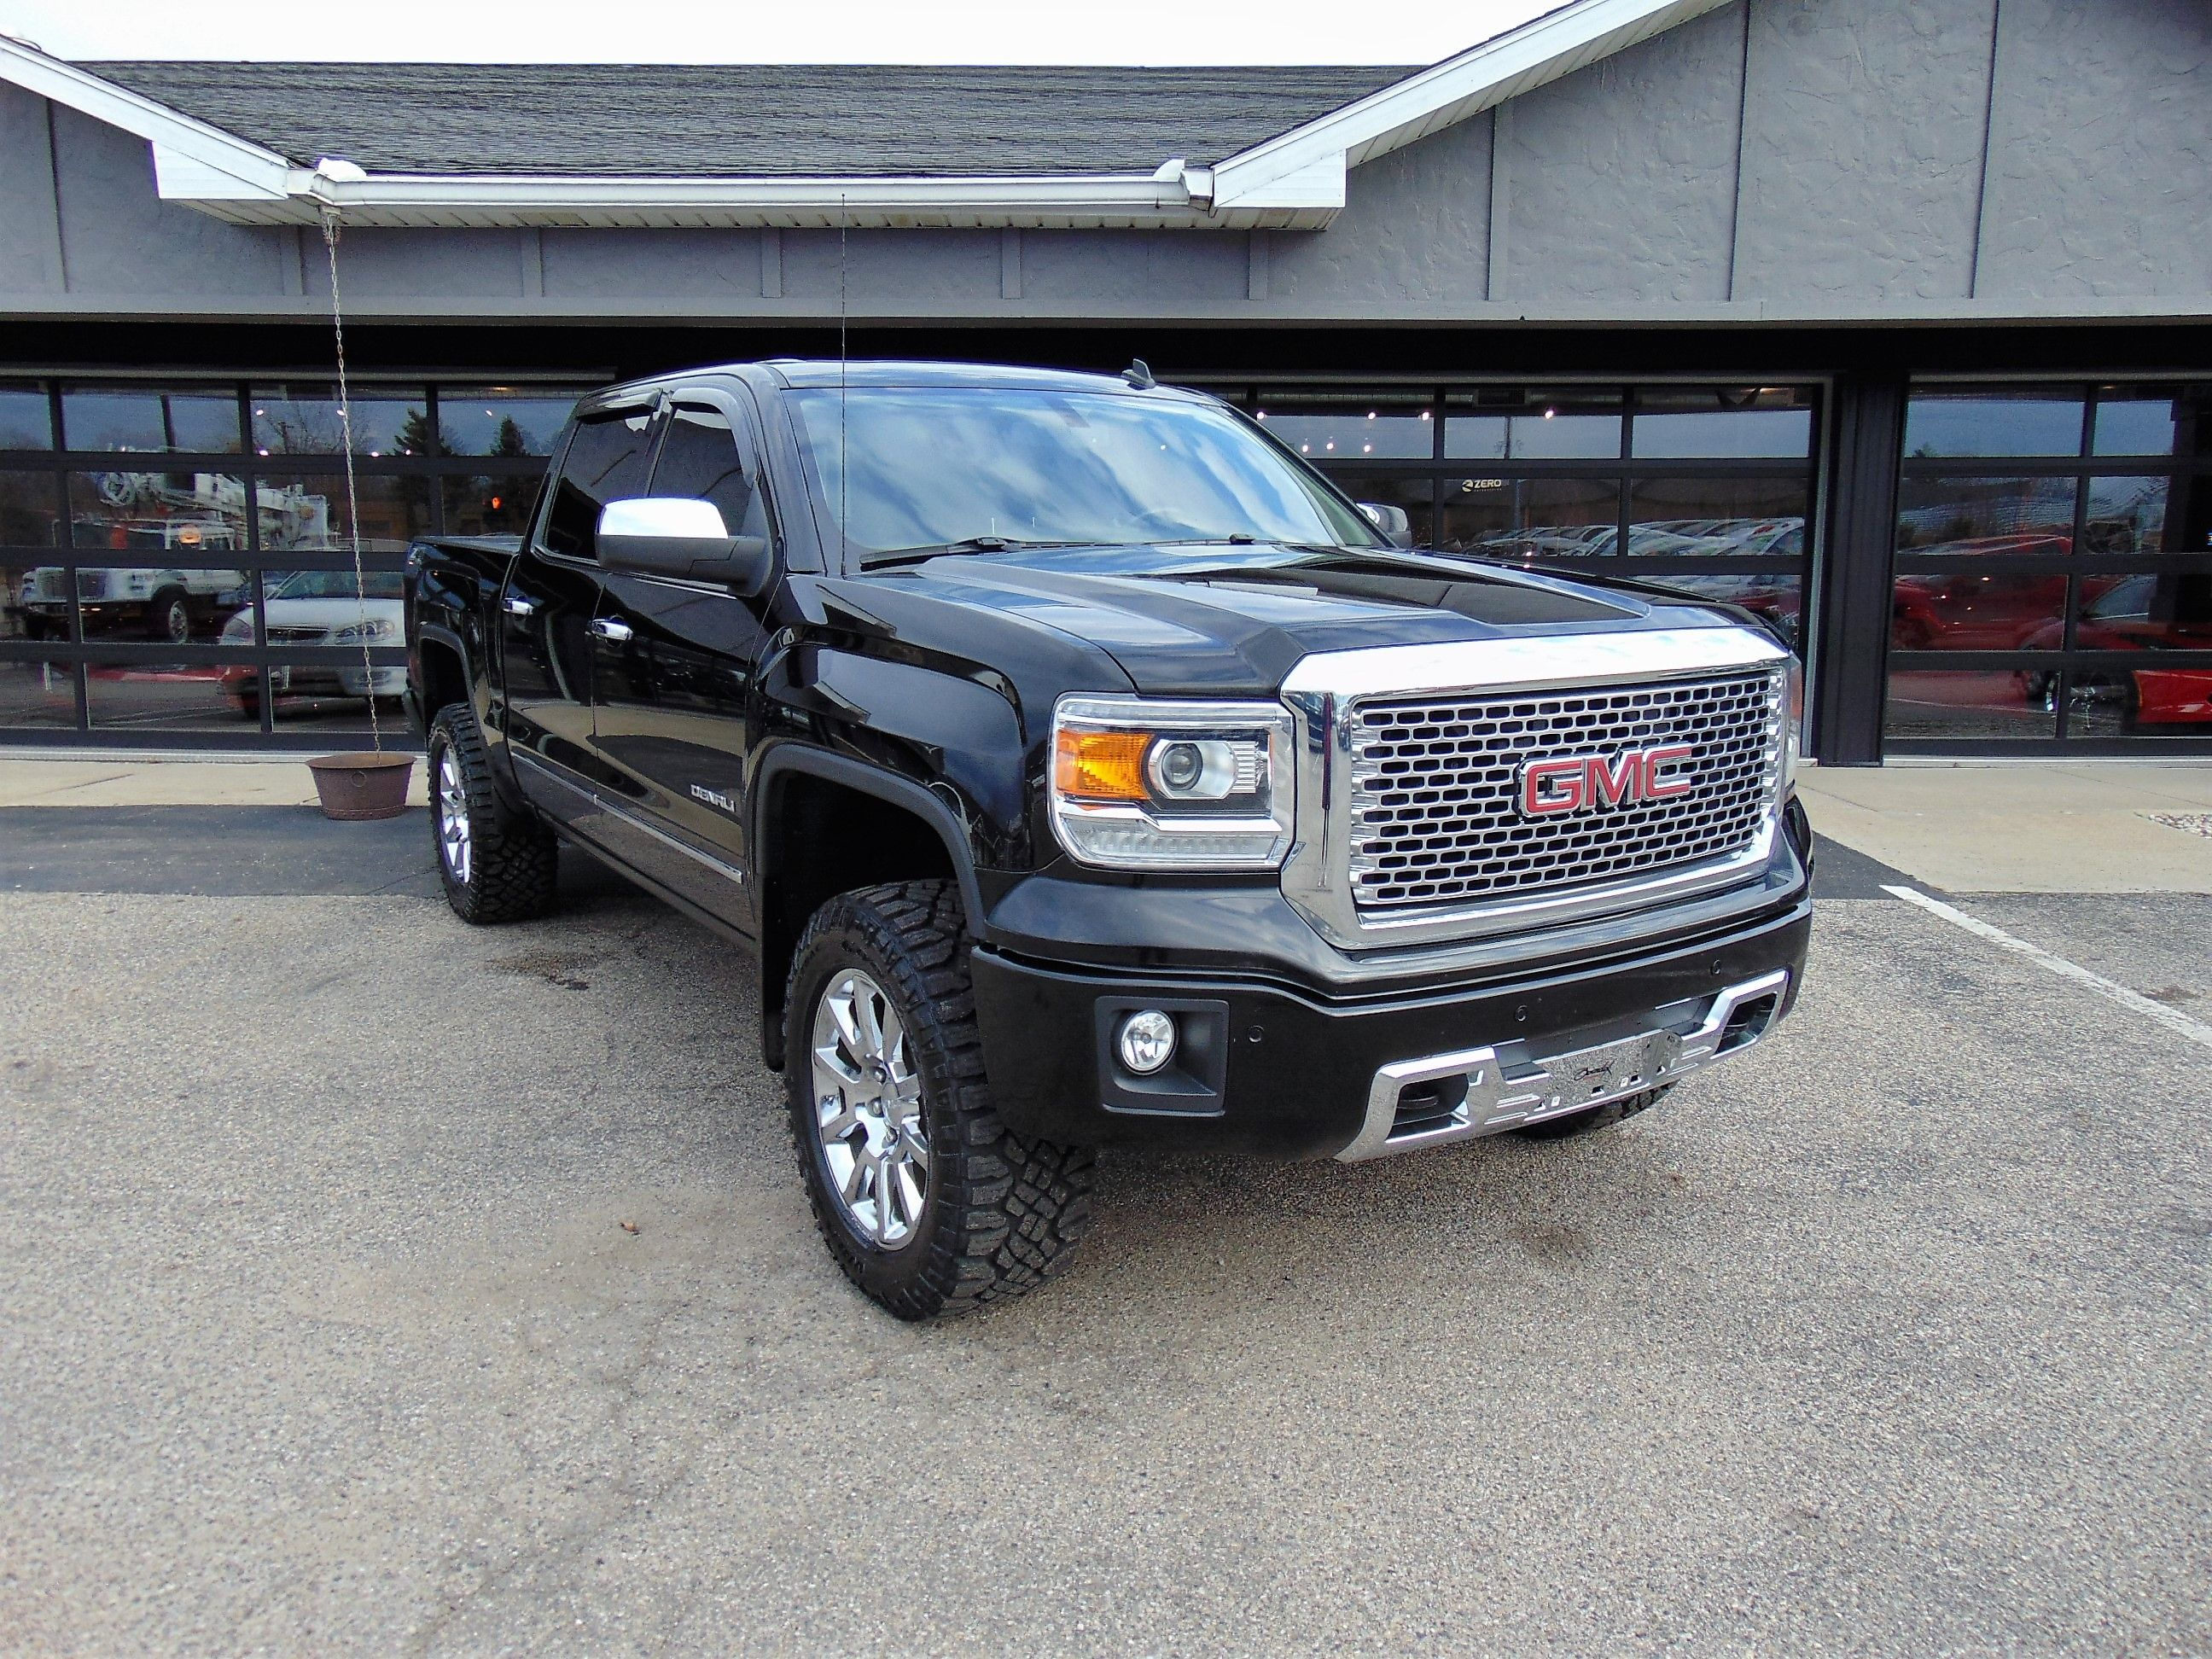 cd390d98a9f1abcece3a2dd7dc275974 Cool Review About 2011 Gmc 2500 Hd